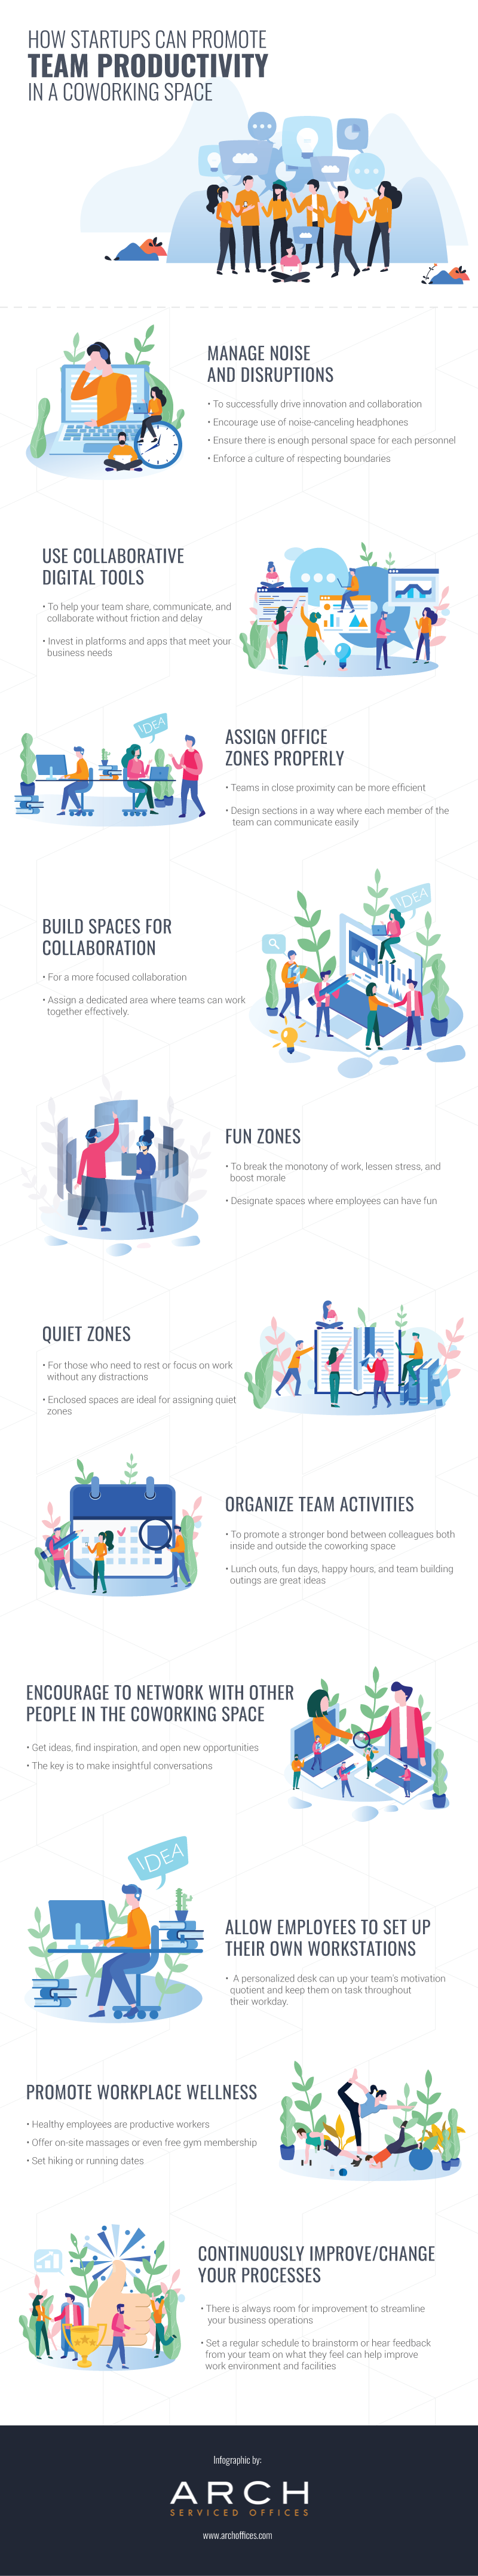 How Startups Can Promote Team Productivity in a Coworking Space #infographic